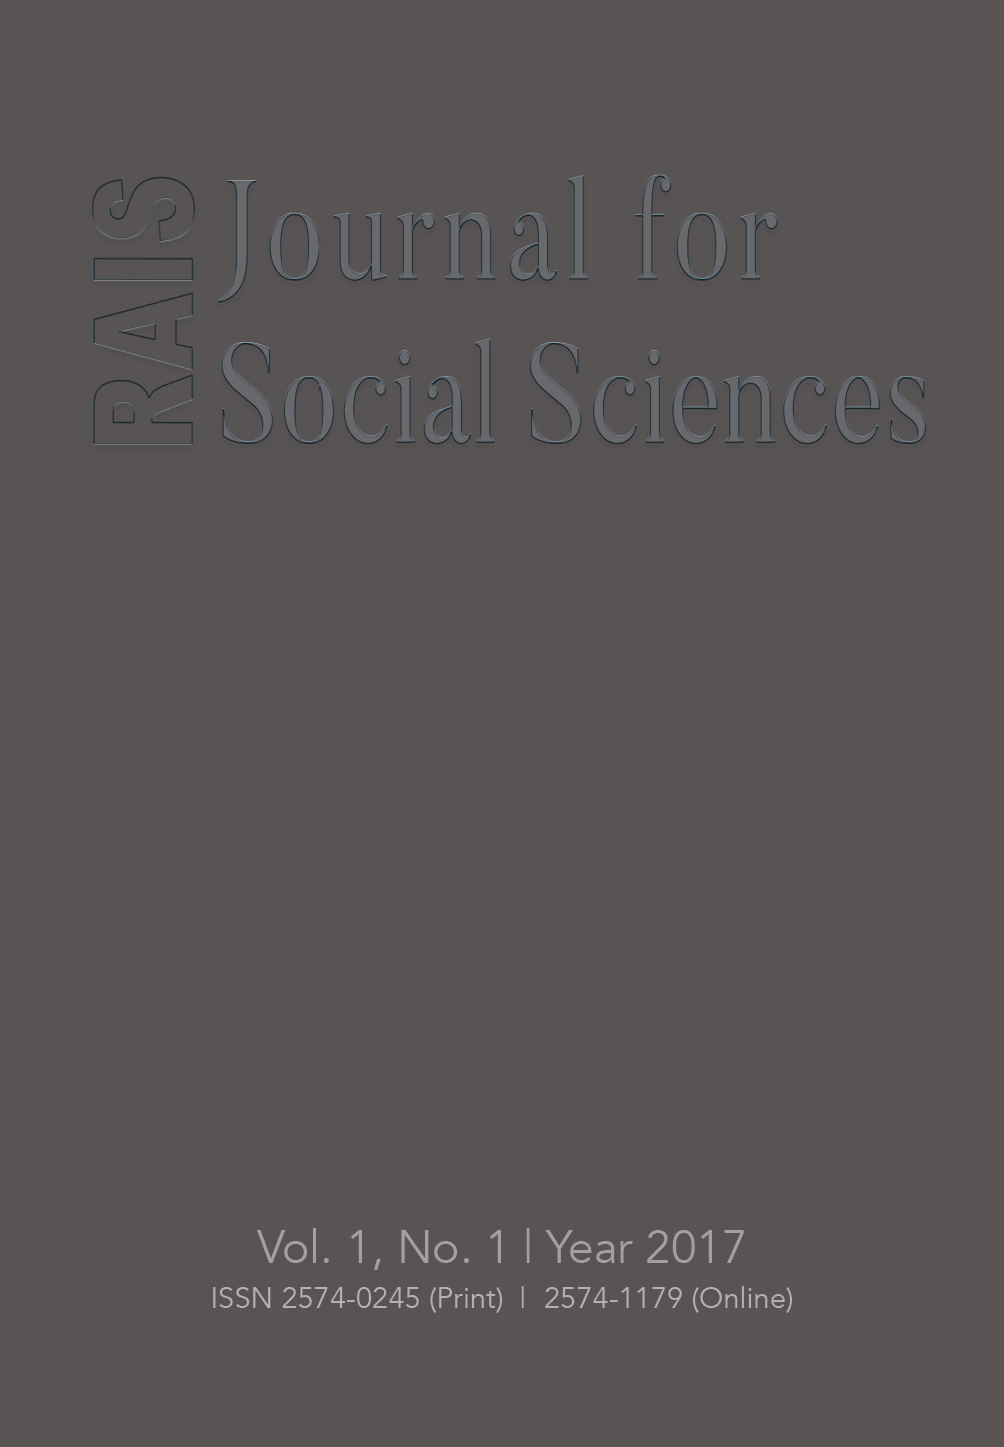 RAIS Journal for Social Sciences